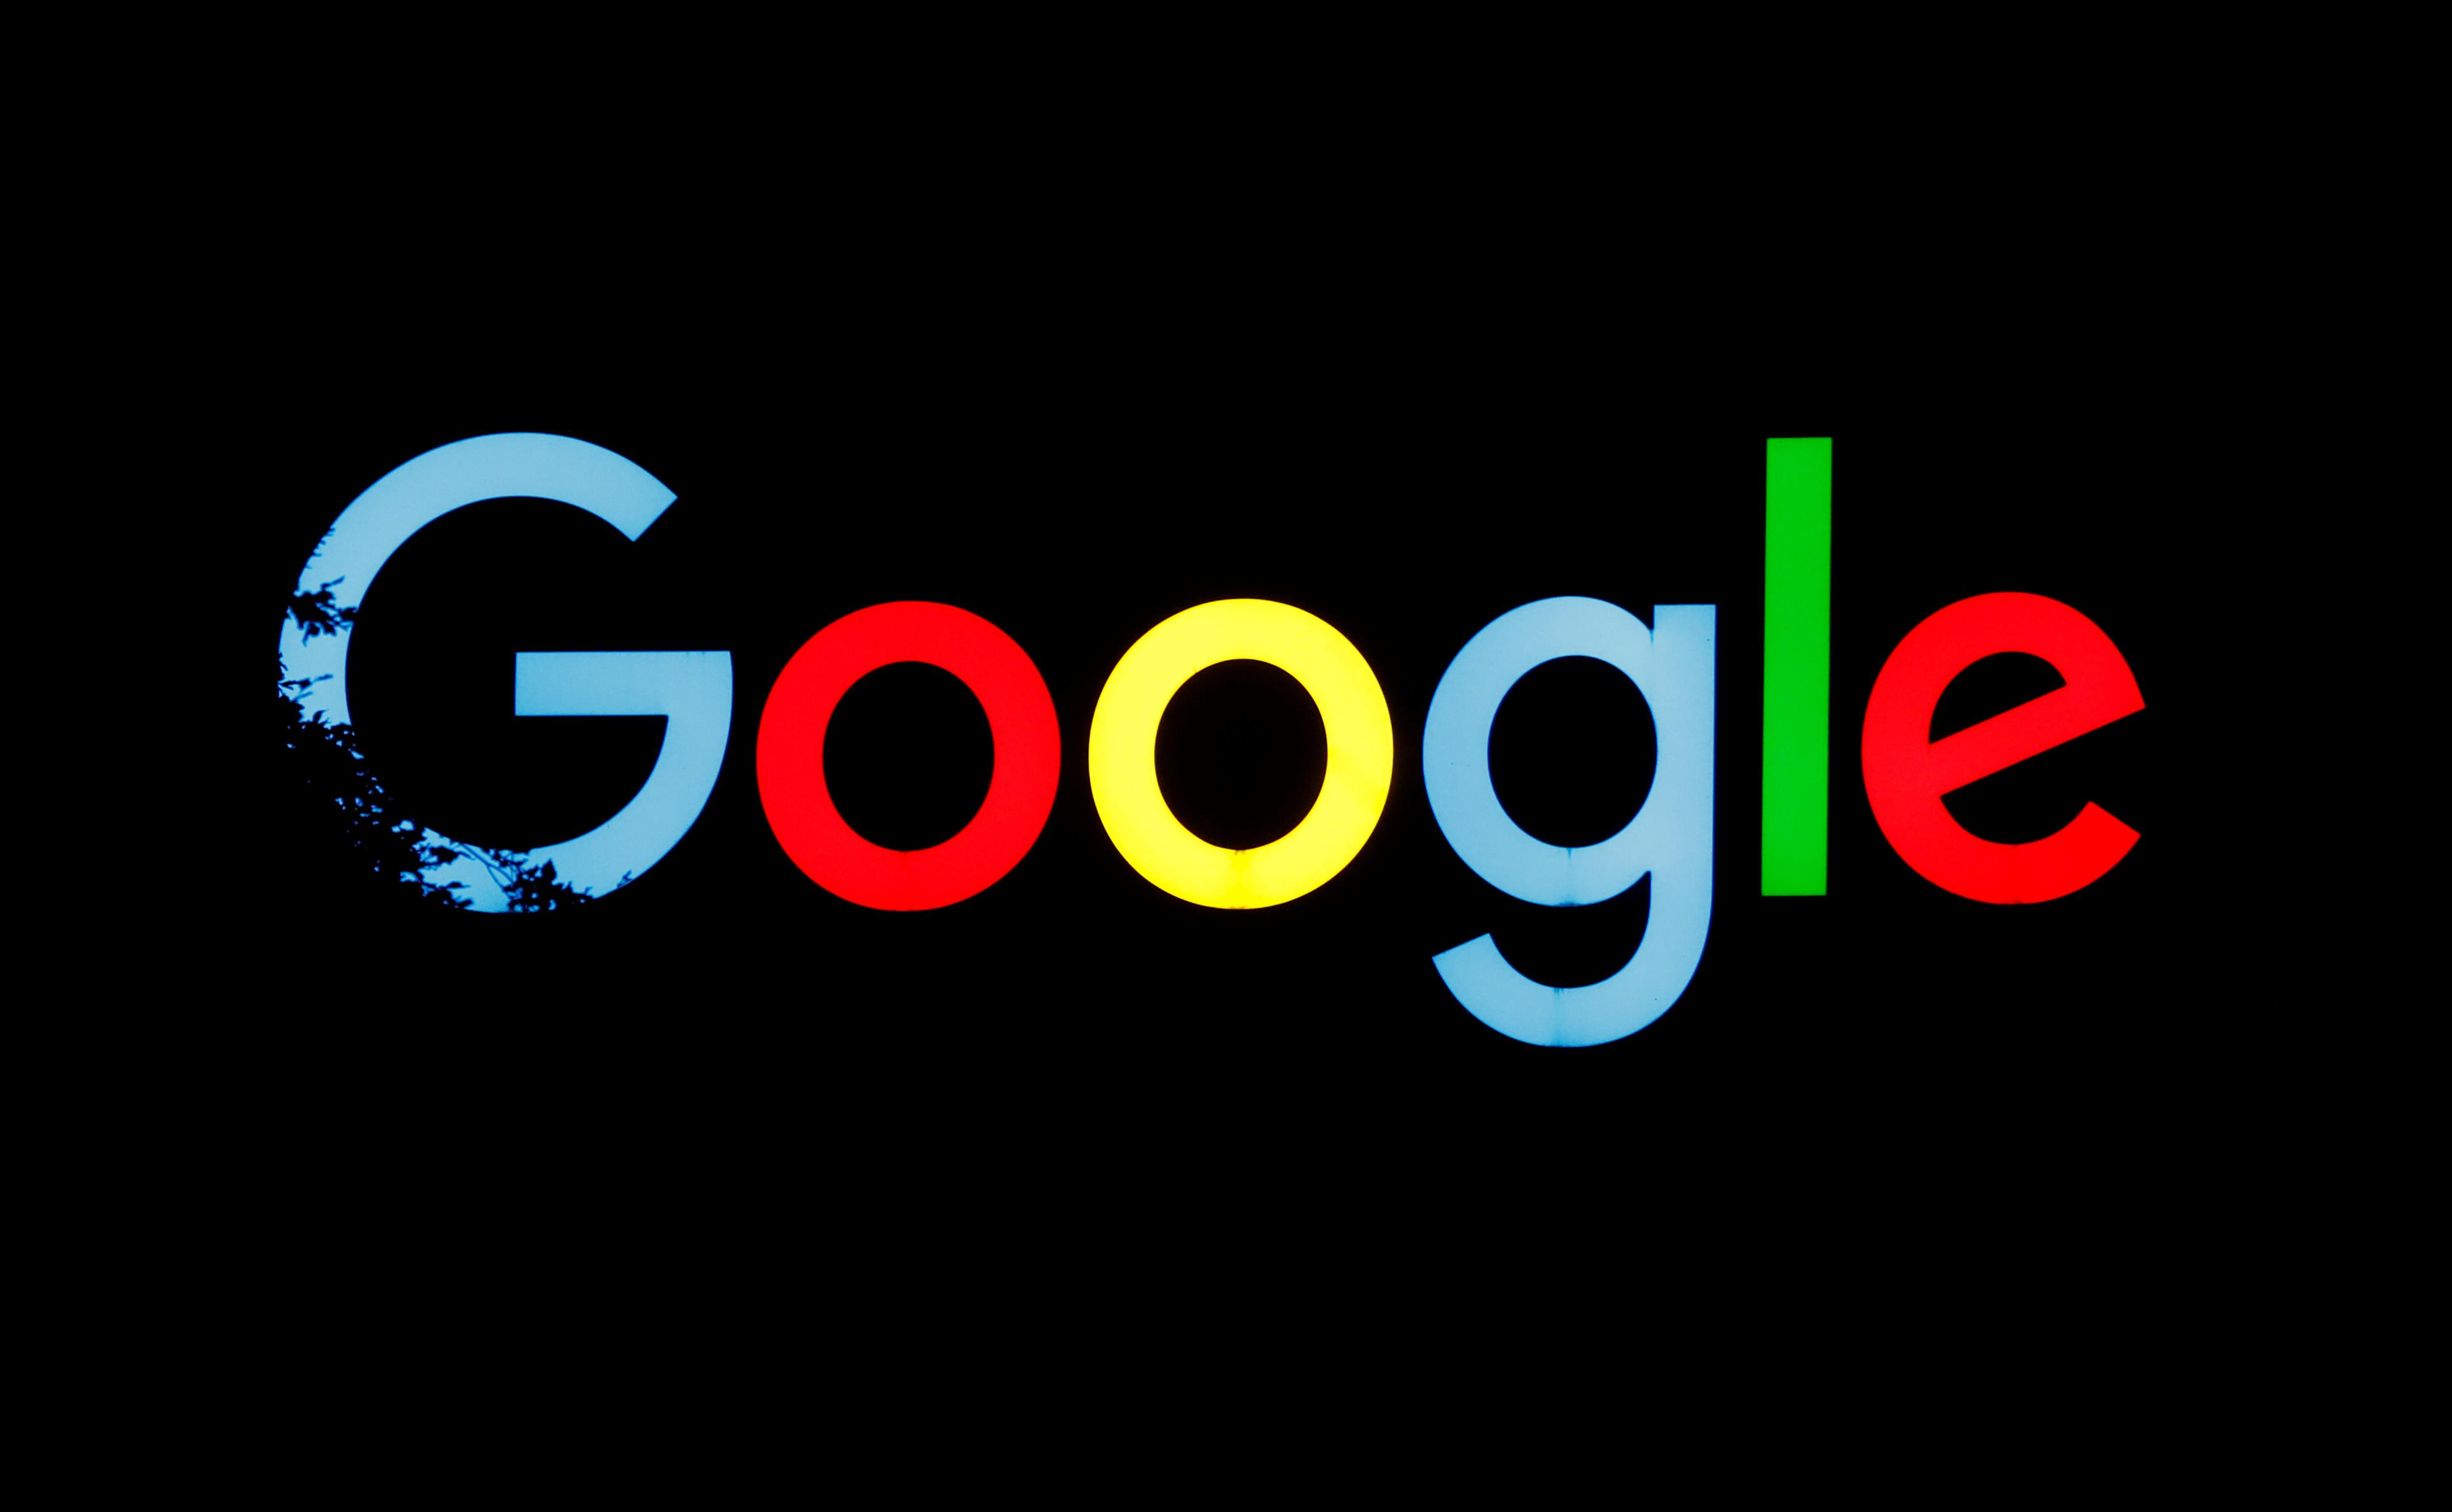 Aggrieved businesses are lining up against Google